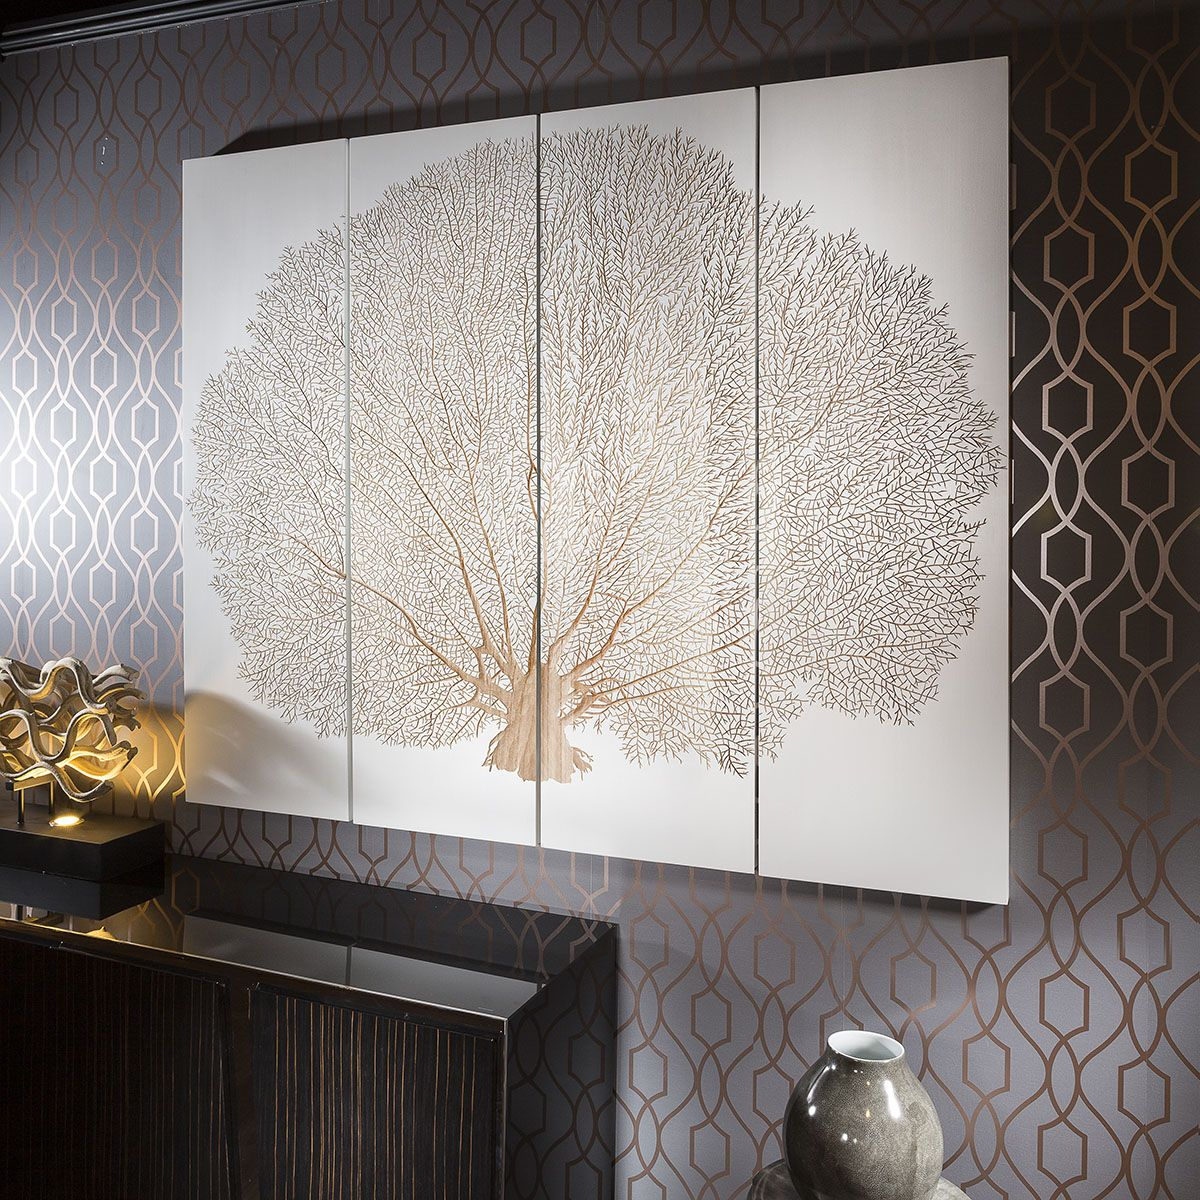 Large Wall Art Artwork Hand Carved Into Wood White Oak Tree 1 5x1 8mtr White Oak Tree Large Wall Art White Oak